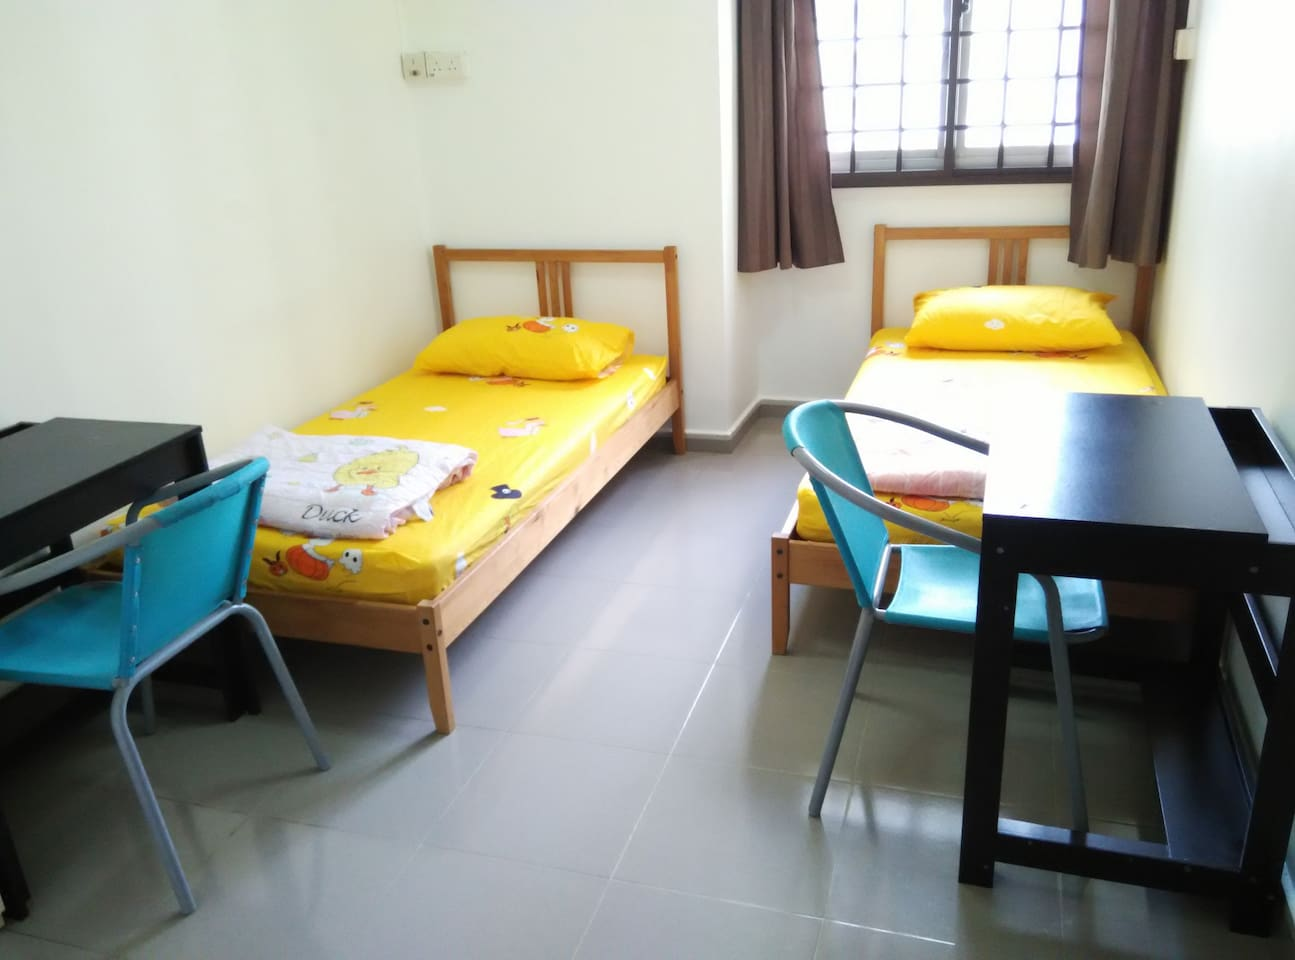 2 solid single beds each with a comfortable 6-inch spring mattress, a clean mattress protector, a clean bed sheet, a clean warm blanket and a clean comfortable pillow. Plus 2 desks, 2 chairs, a full-length mirror and a big wardrobe.